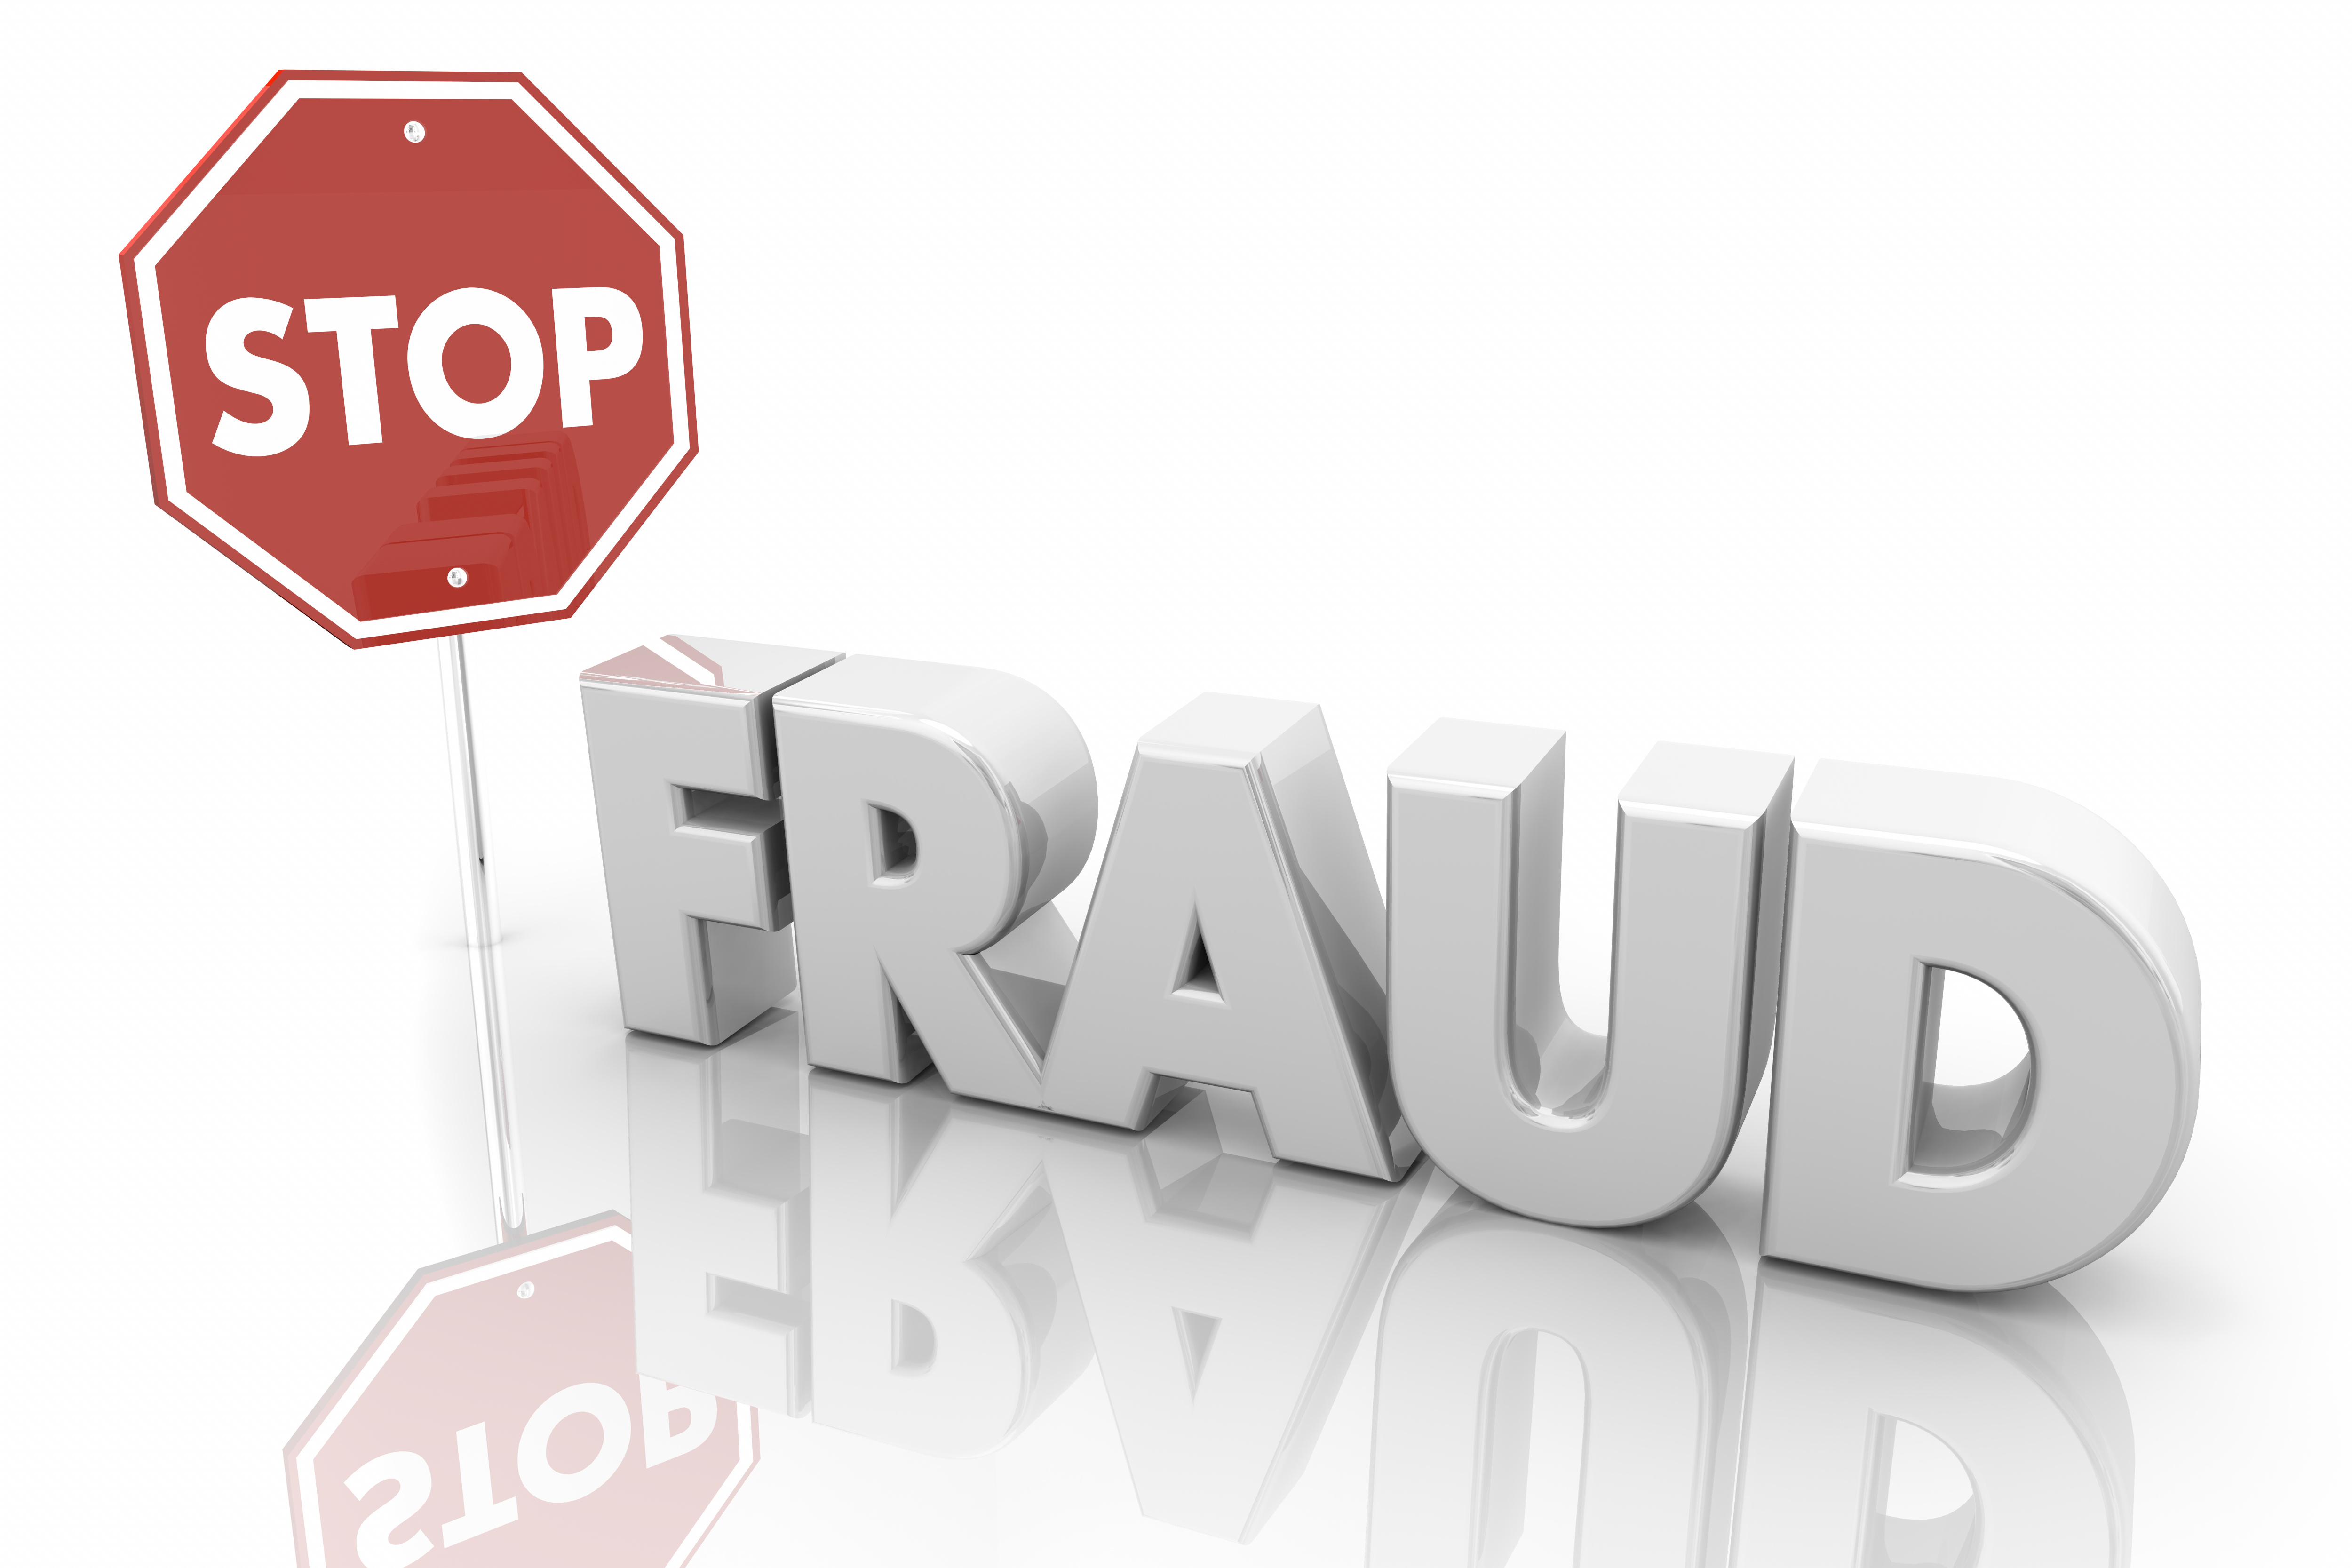 small business bookkeeping services to help stop fraud.